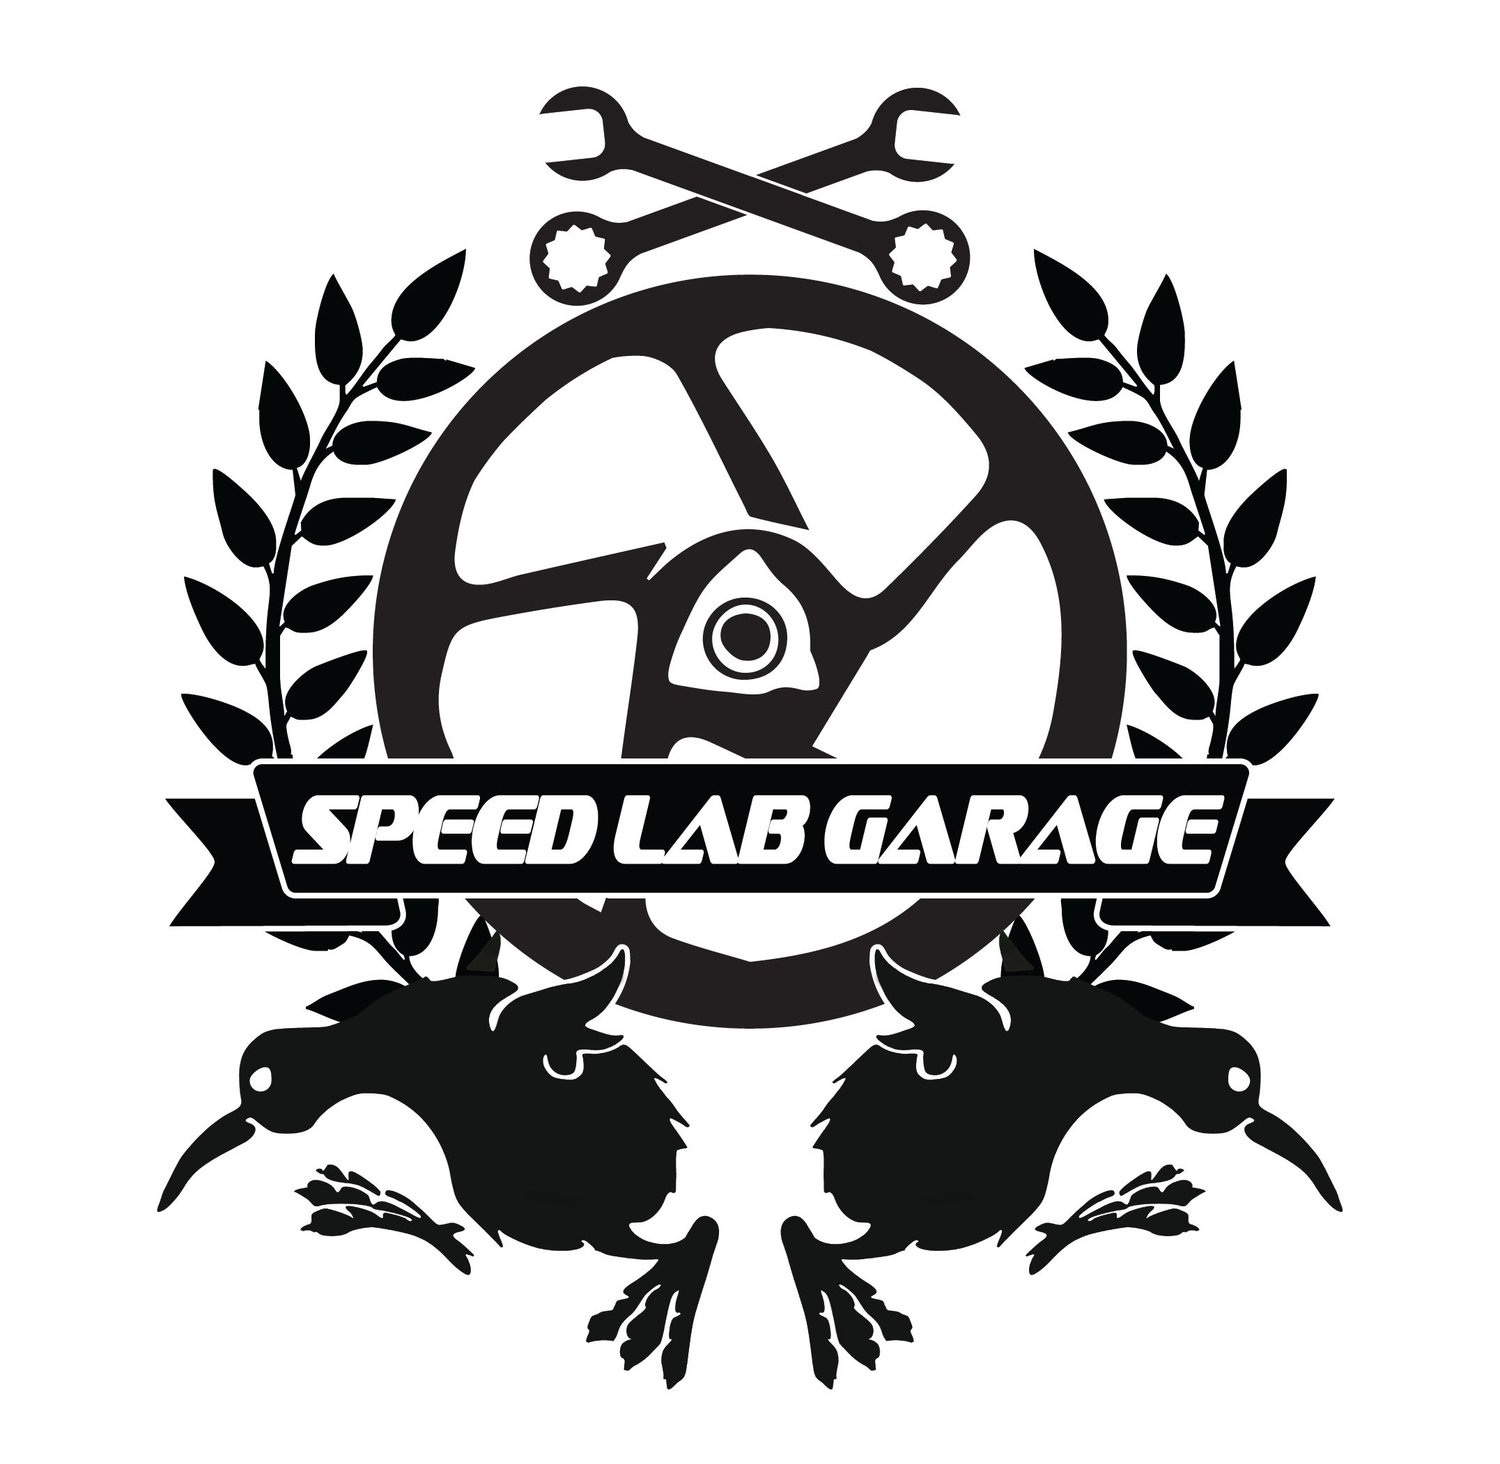 Speedlab Garage